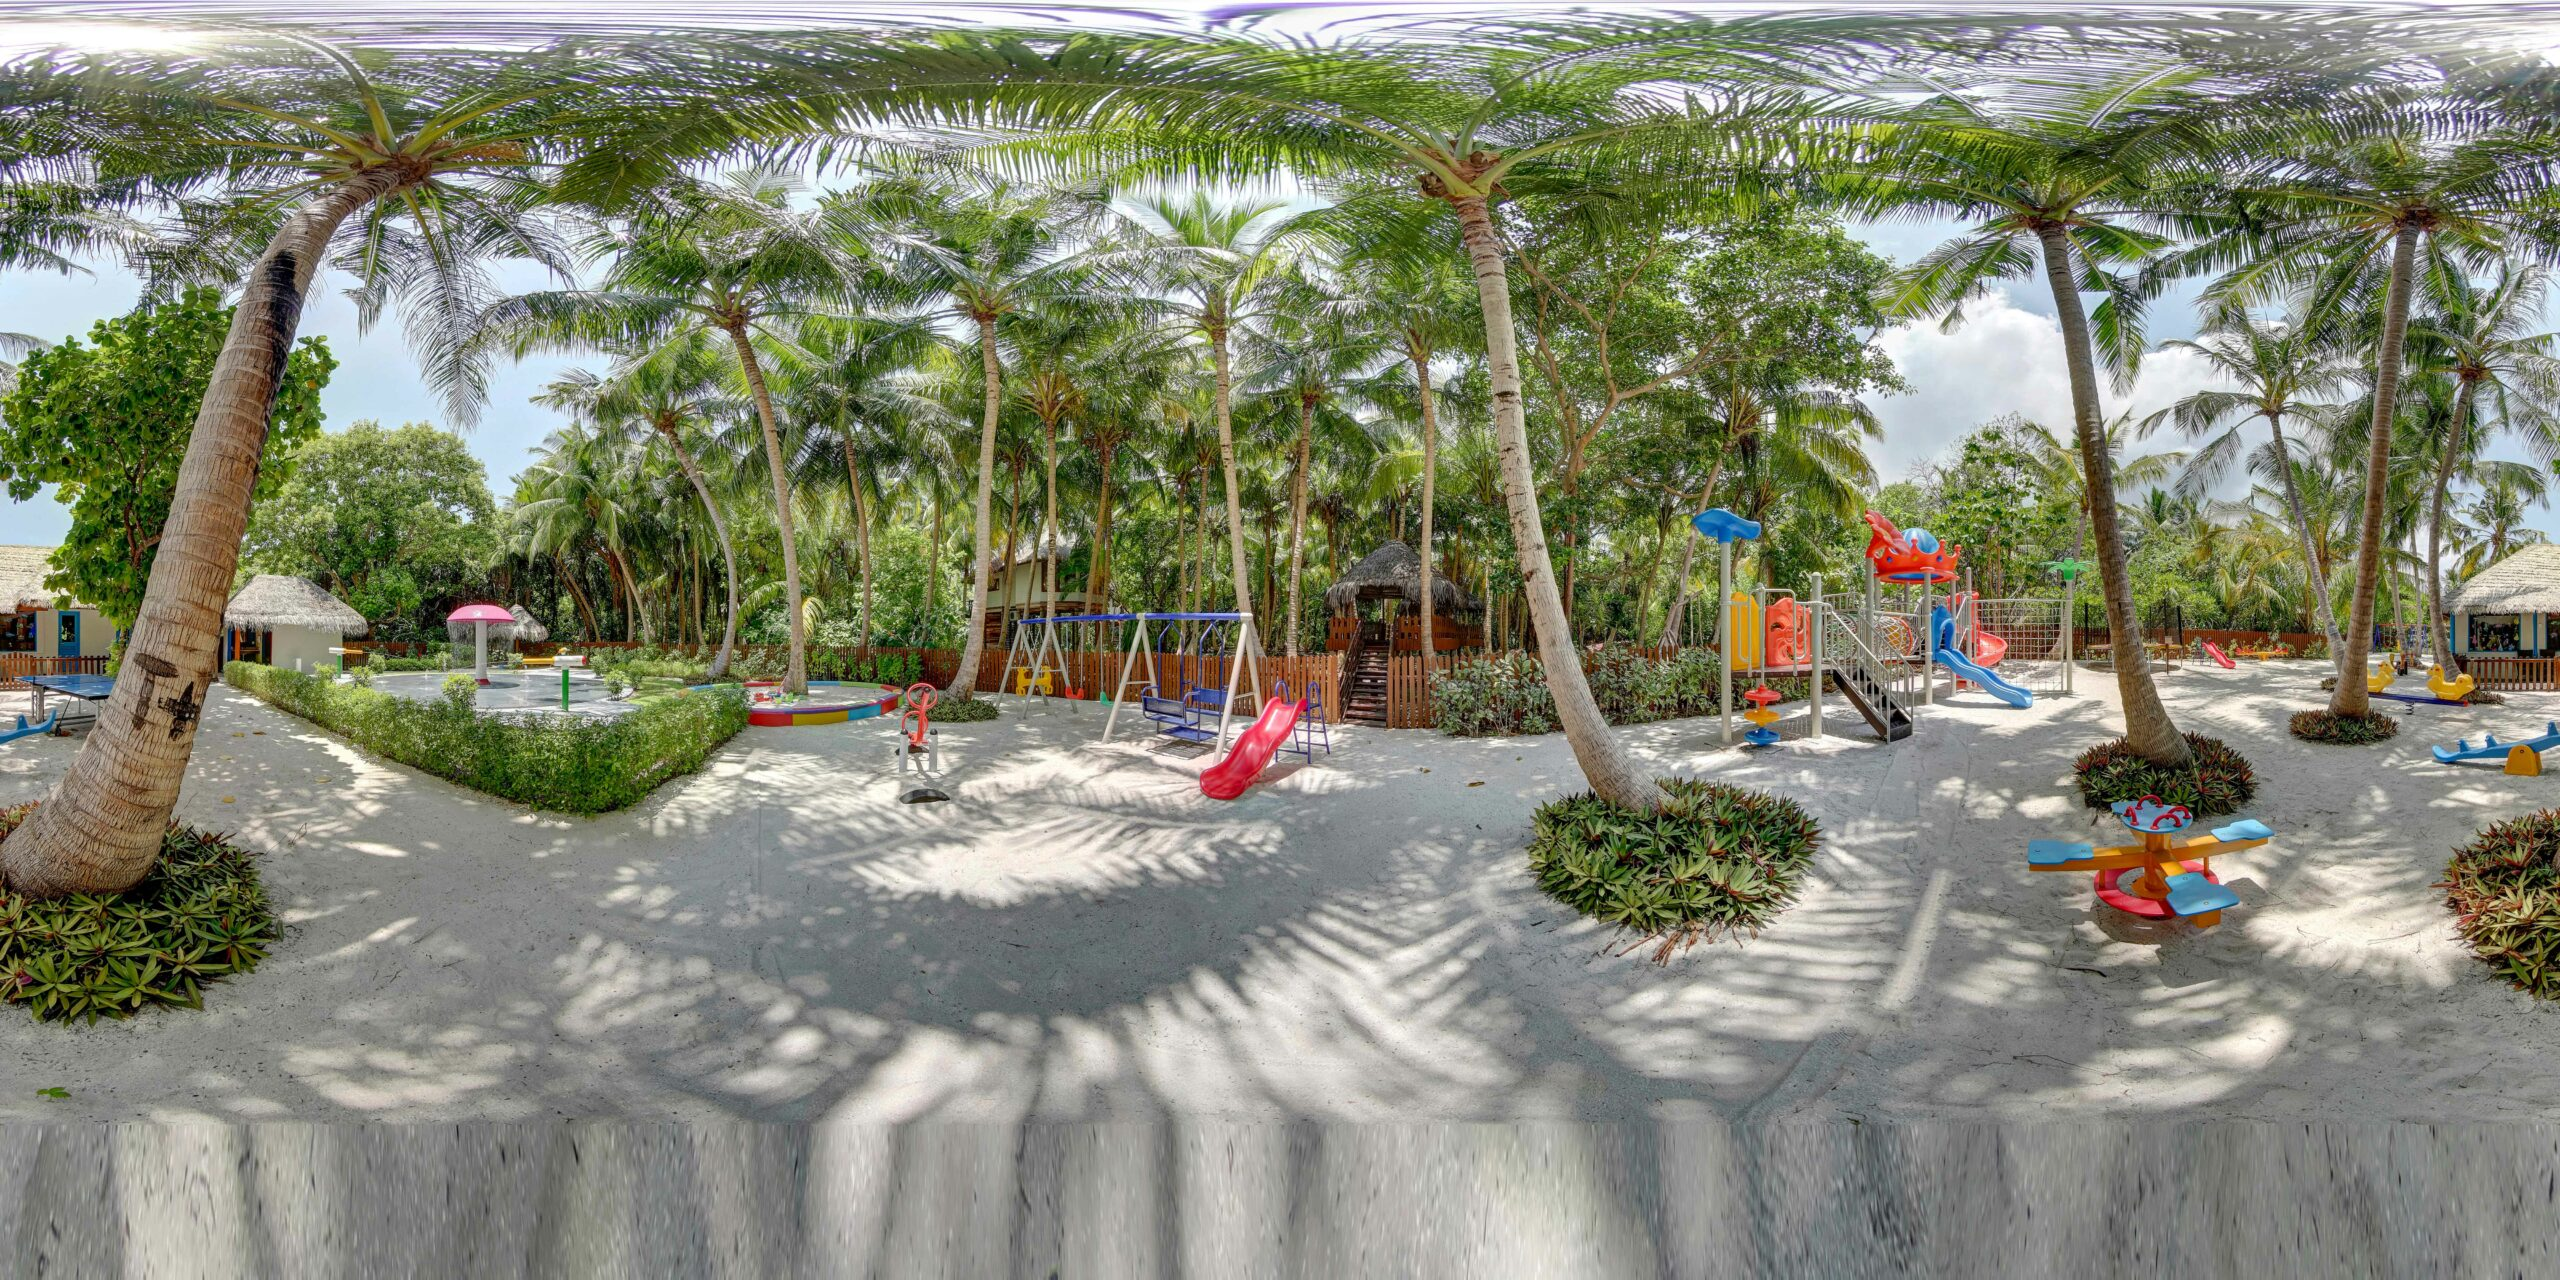 Dusit Thani-Kids Club Outdoor Area - General